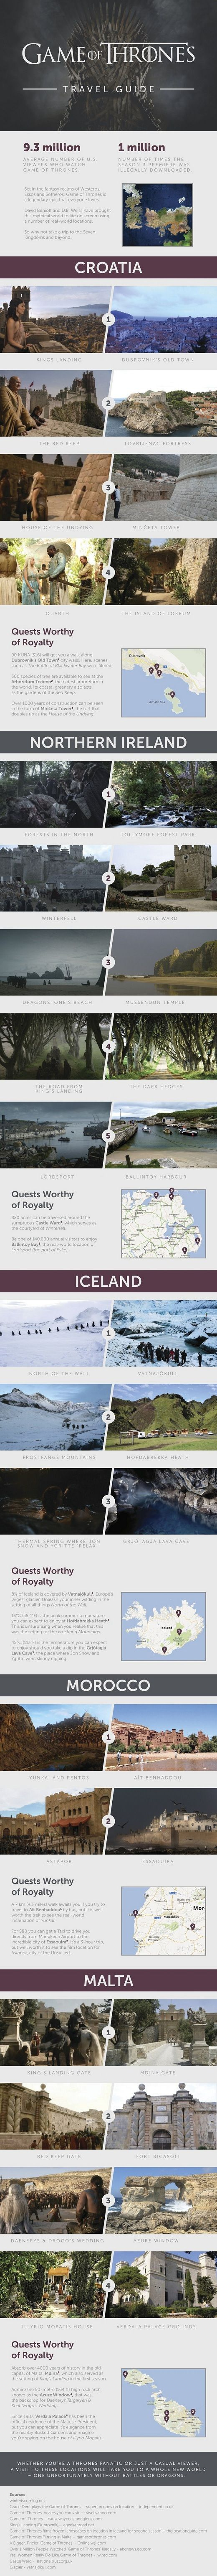 Game Of Thrones Travel Guide #Infographic #GameOfThrones